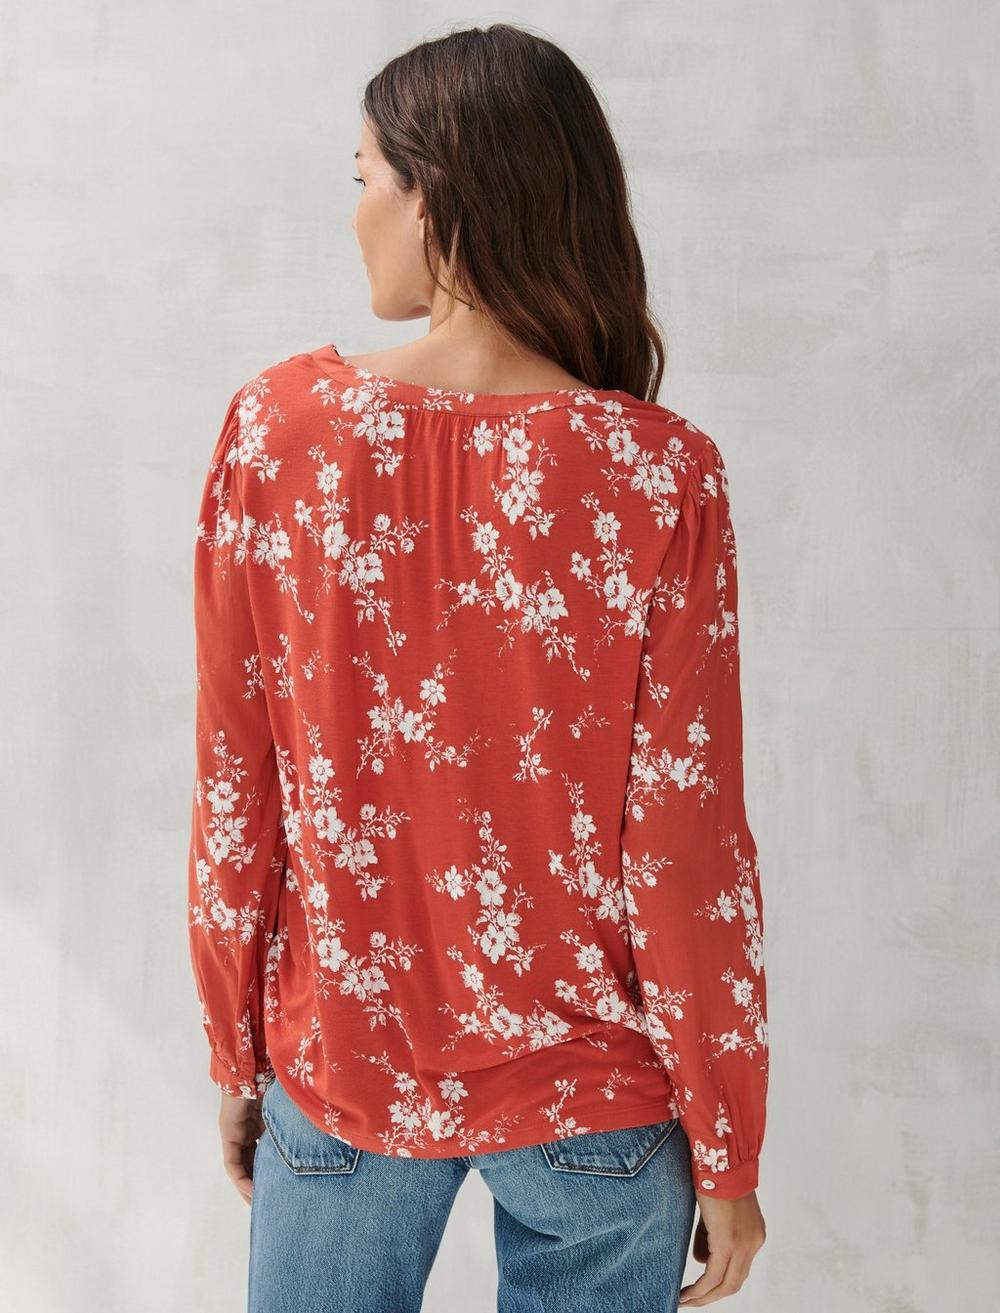 PRINTED SQUARE NECK TOP, image 4